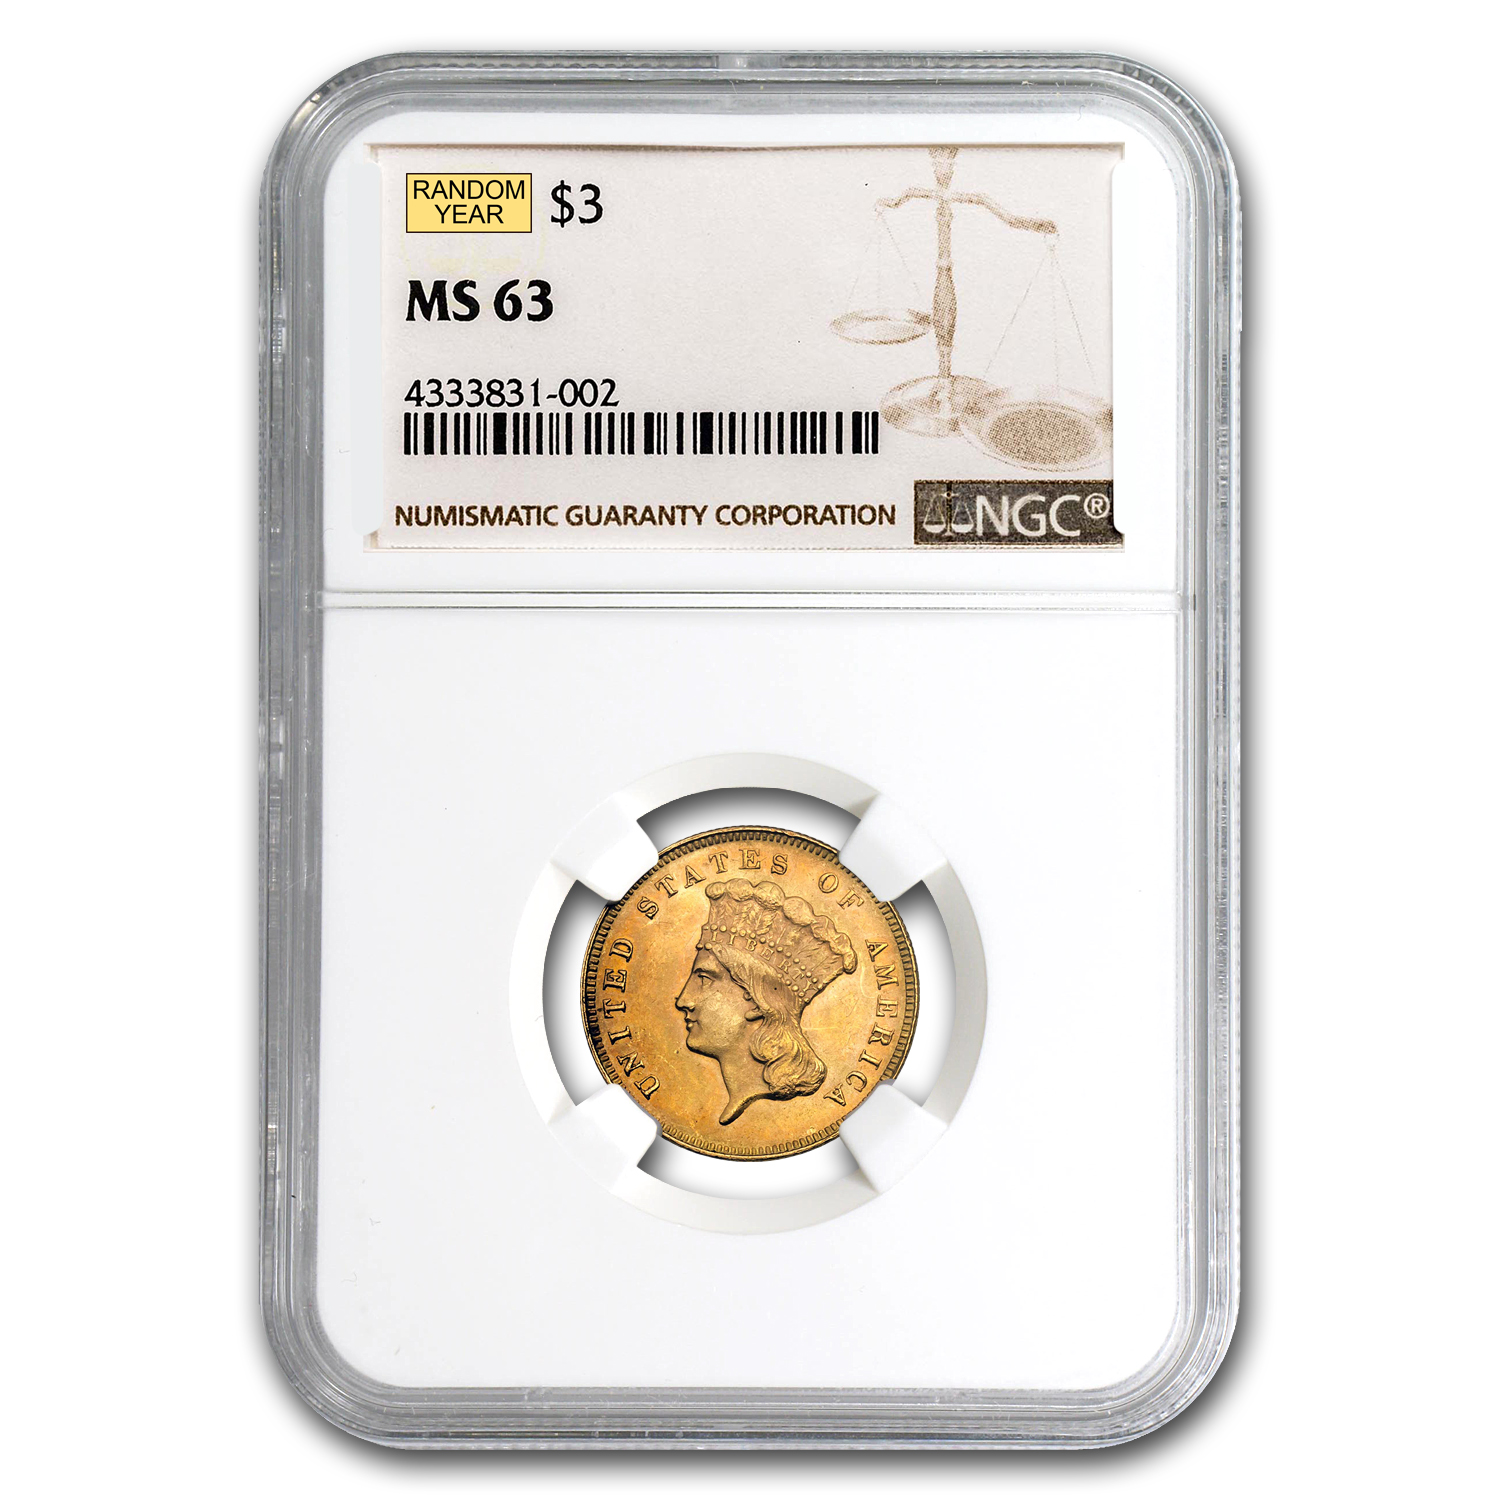 $3 Gold Princess MS-63 NGC/PCGS